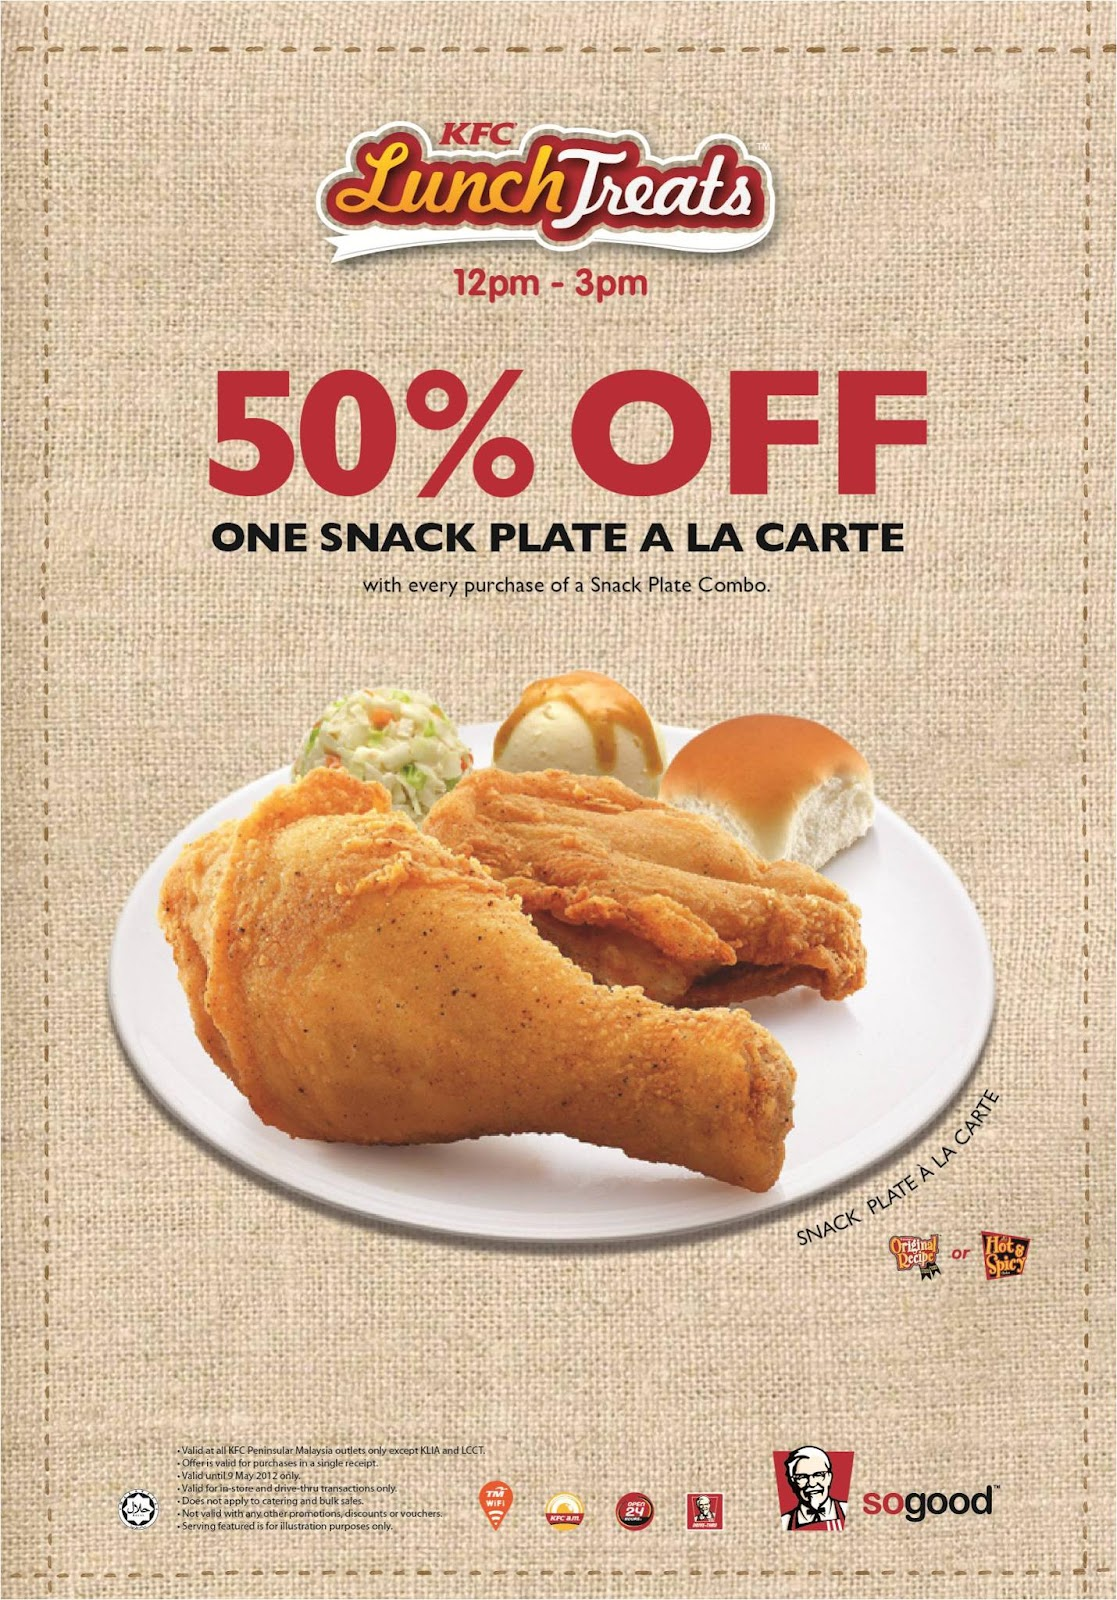 Checkout KFCu0027s 6pm - 9pm Dinner Plate @ Half Price promotion!  sc 1 st  Sales nonstop & KFC Promotion : Snack Plate a la carte @ Half Price | Sales nonstop